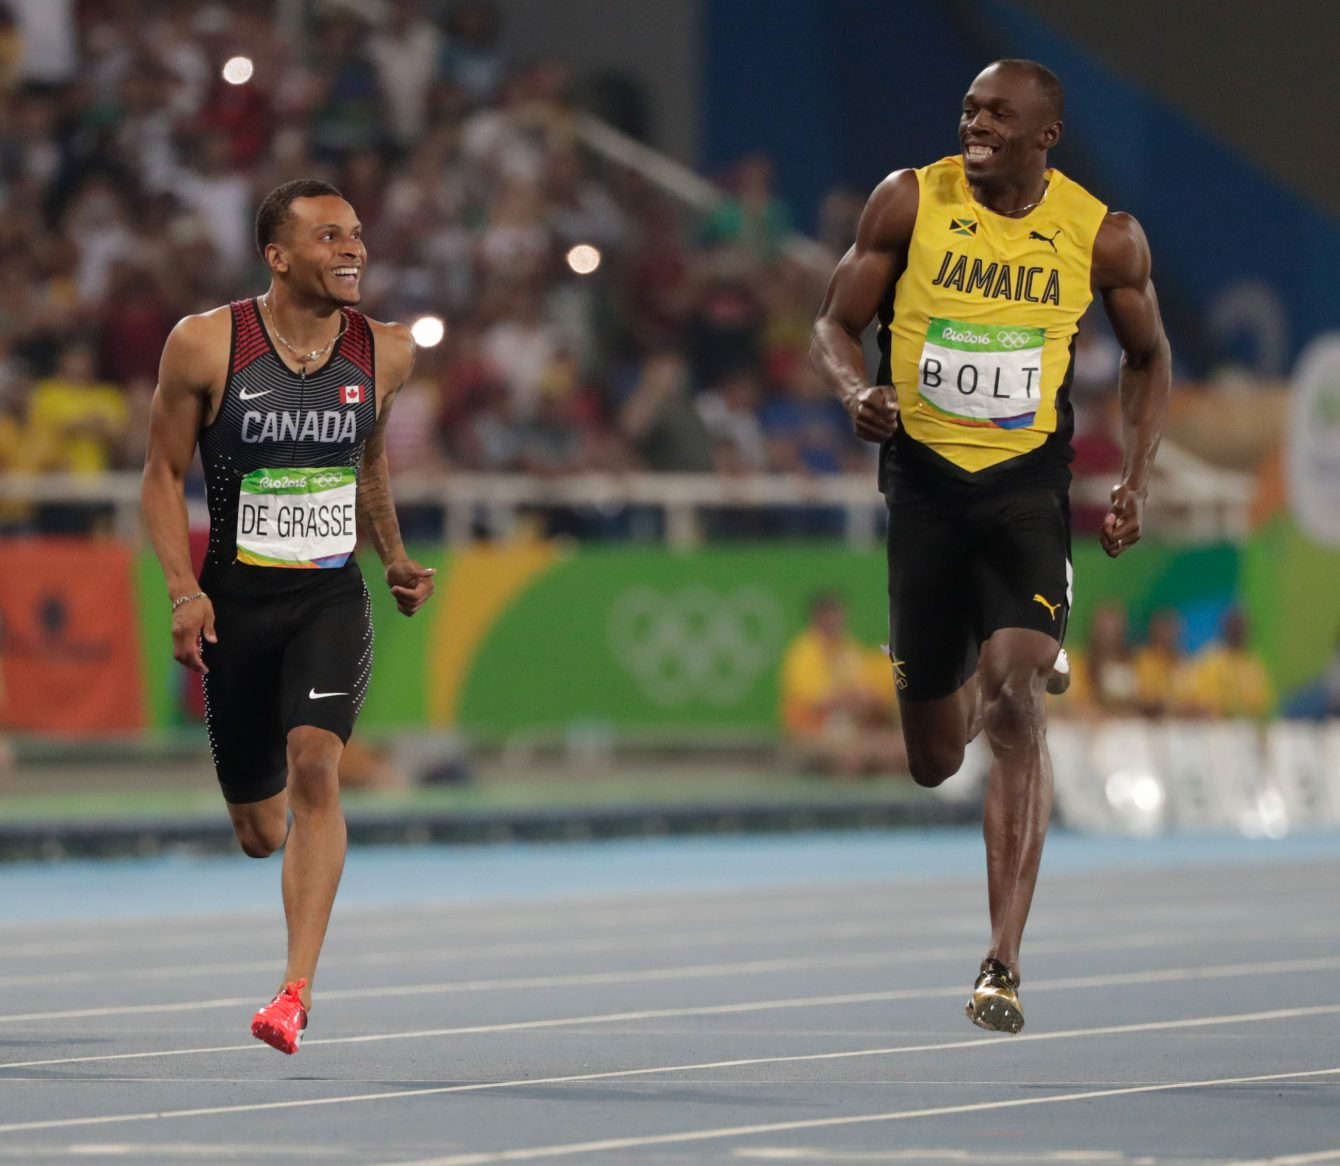 Andre De Grasse (left) and Usain Bolt share a laugh at the finish line in the semifinals of the Olympic 200m on August 17, 2016 in Rio de Janeiro.